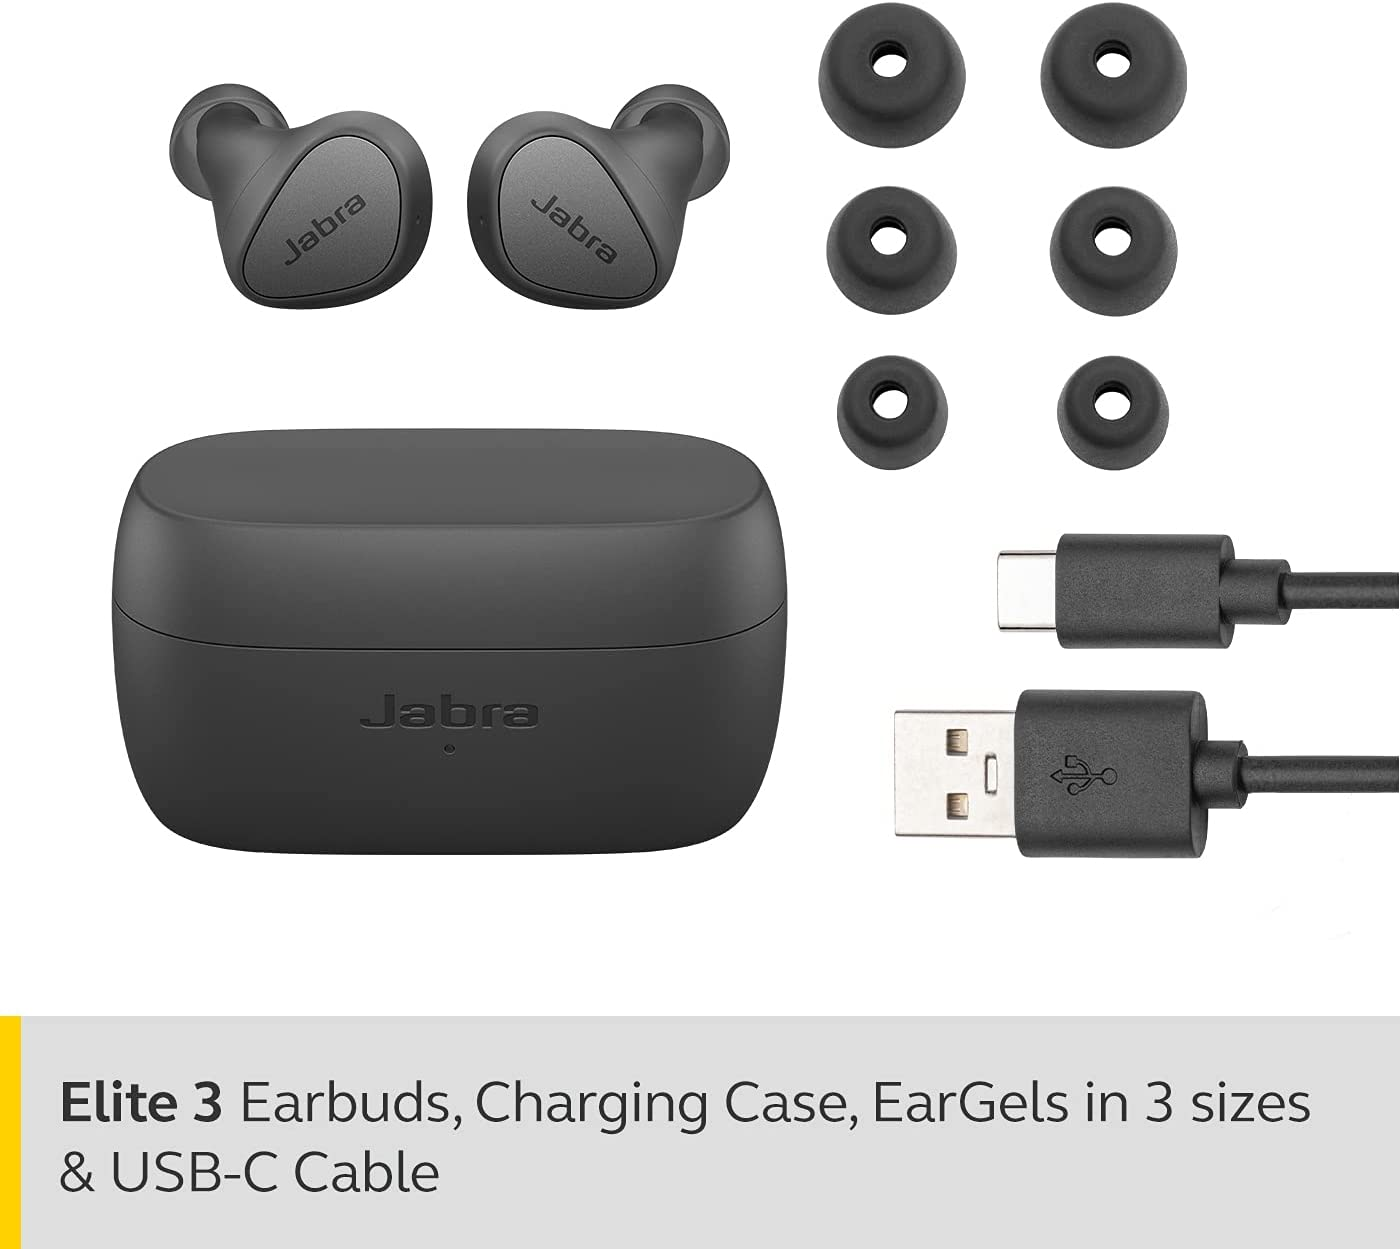 Jabra Elite 3 In Ear Wireless Bluetooth Earbuds – Noise isolating True Wireless buds with 4 built-in Microphones for Clear Calls, Rich Bass, Customizable Sound, and Mono Mode - Dark Grey